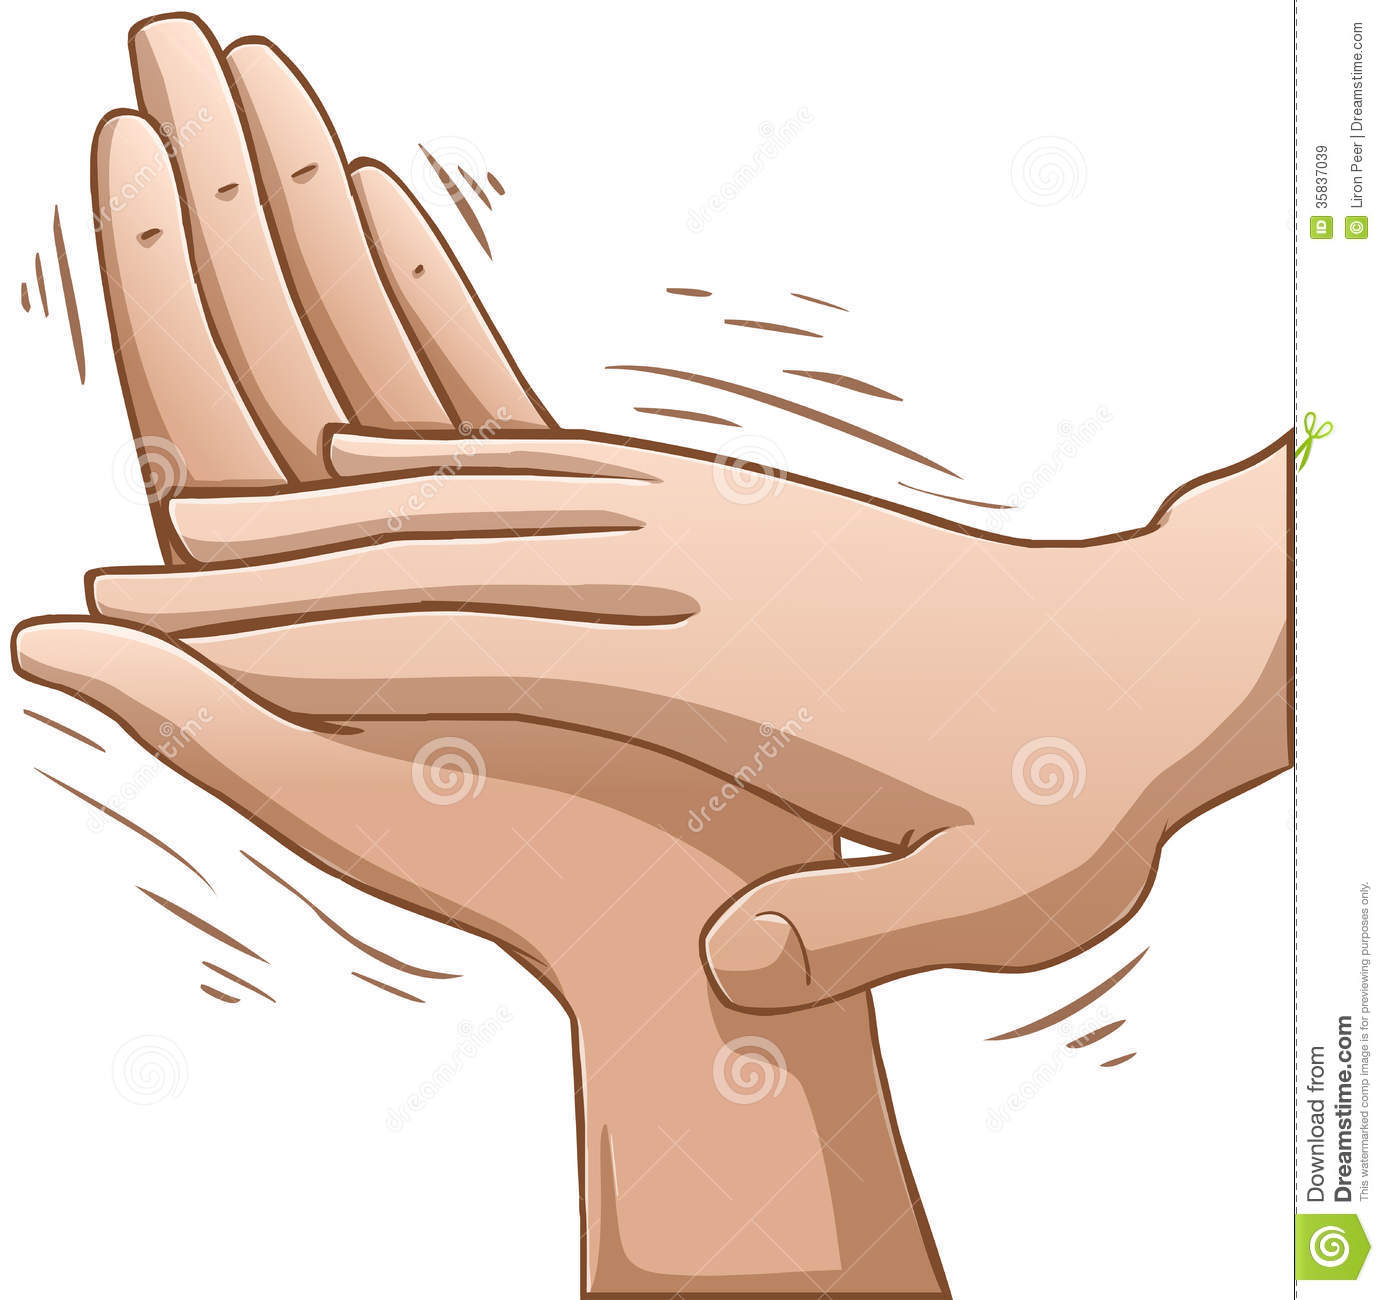 Applause Clipart Clapping Hands Royalty Free